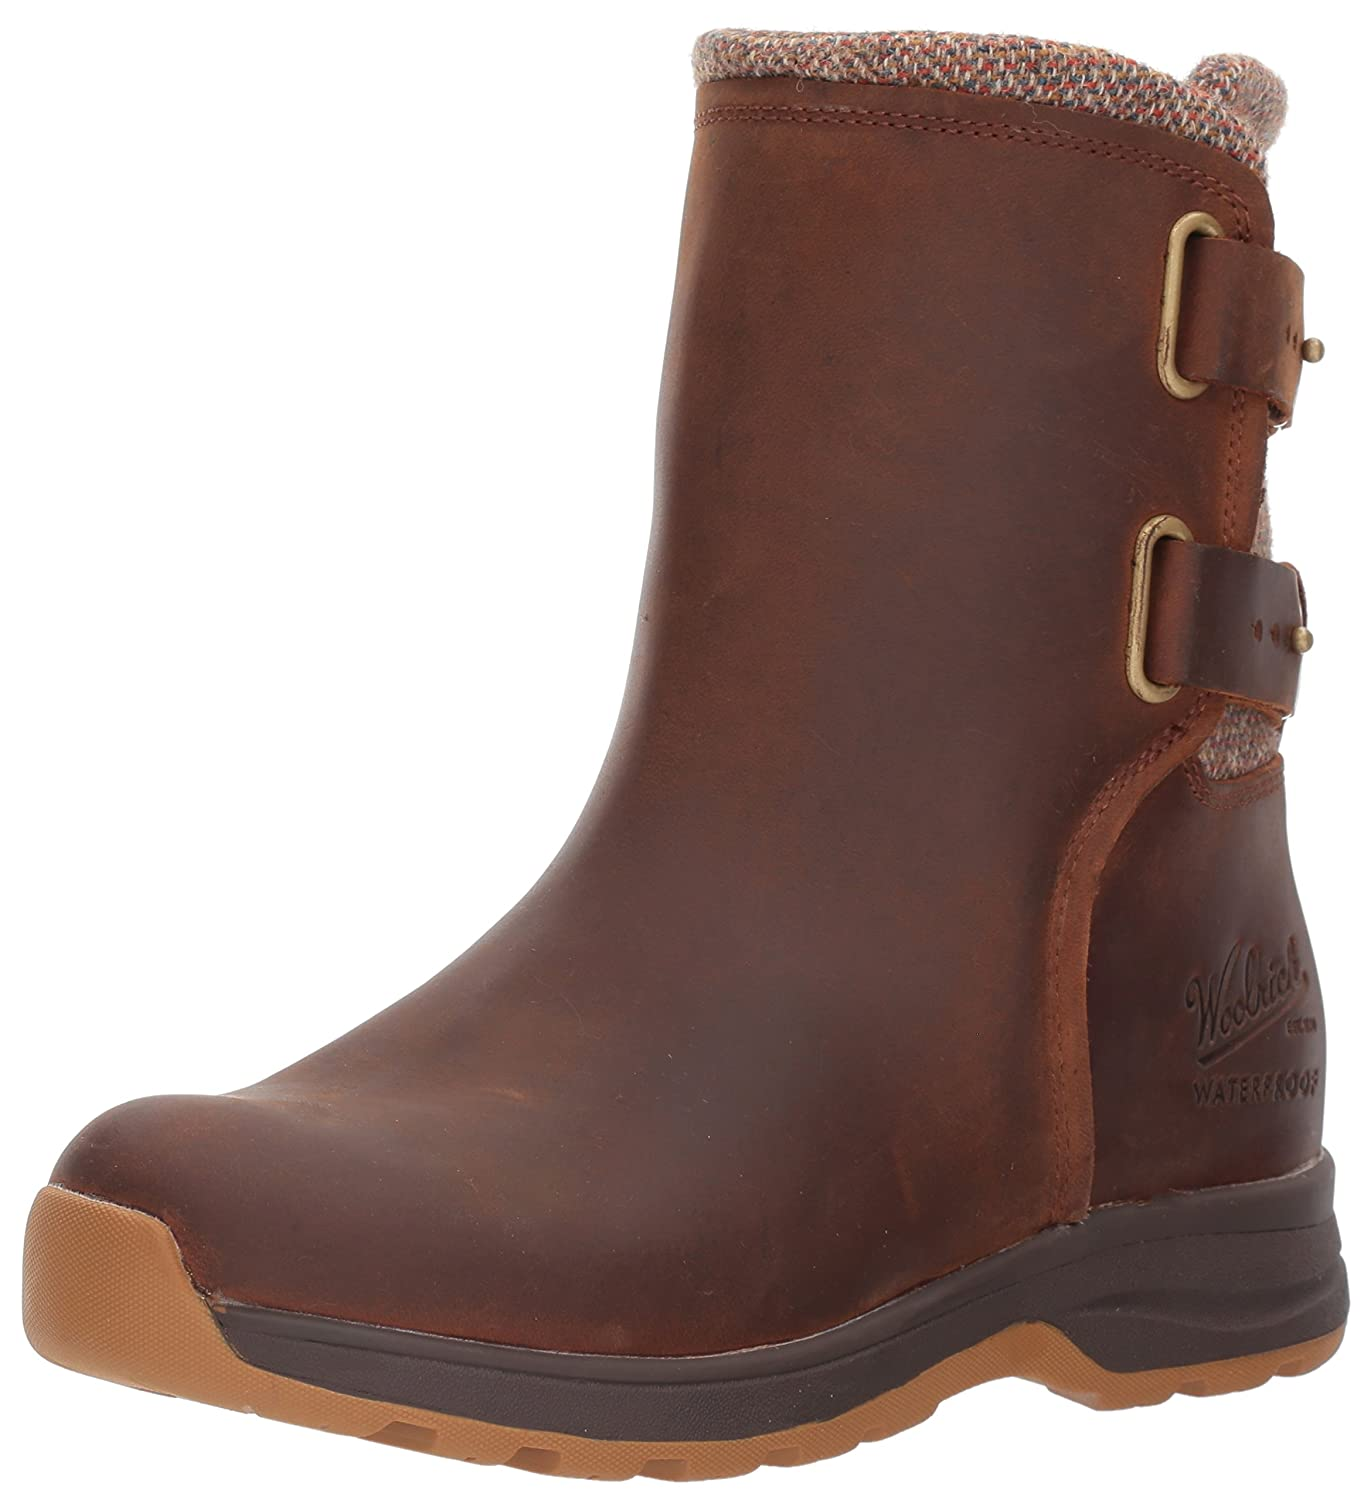 Woolrich Women's Koosa Winter Boot B01N4DCAW6 6.5 B(M) US|Ginger/Oxford